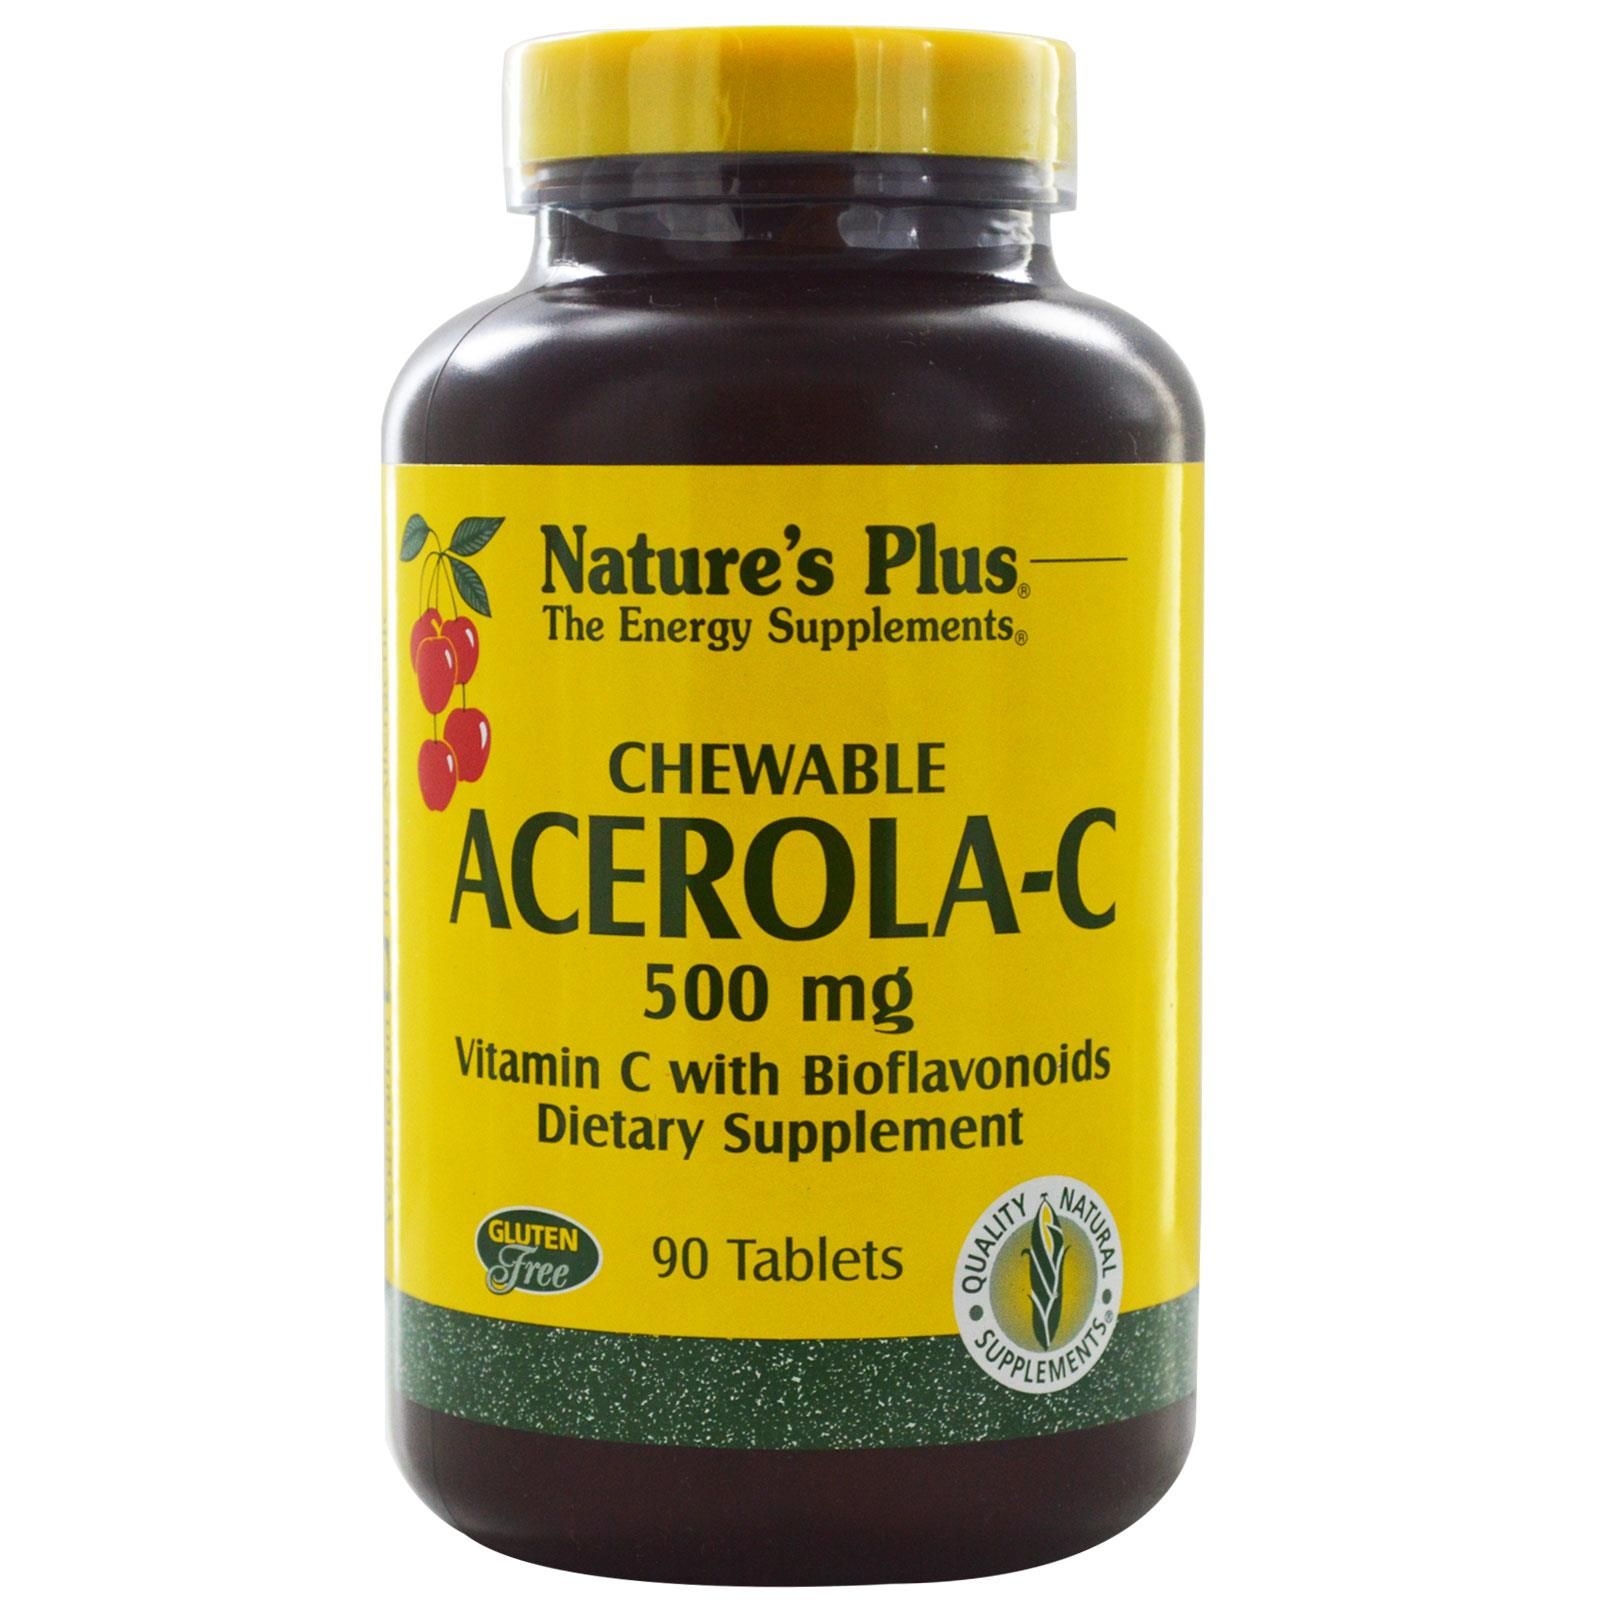 Nature's Plus, Chewable AcerolaC, Vitamin C with